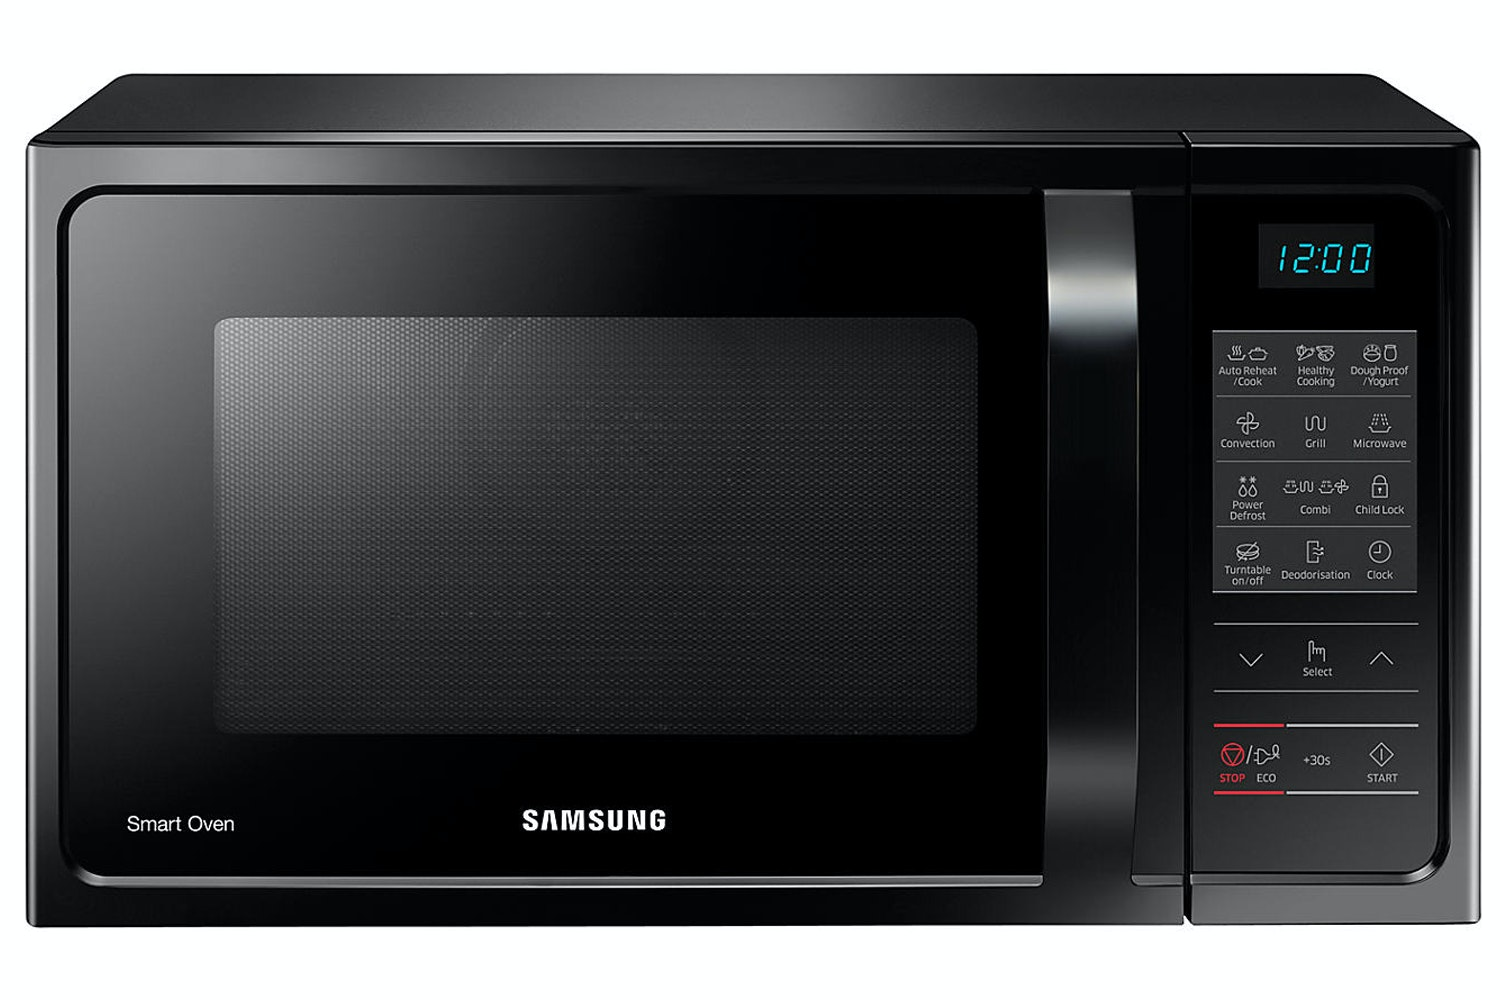 Samsung 28L 900W Smart Combination Microwave | MC28H5013AK/EU | Black